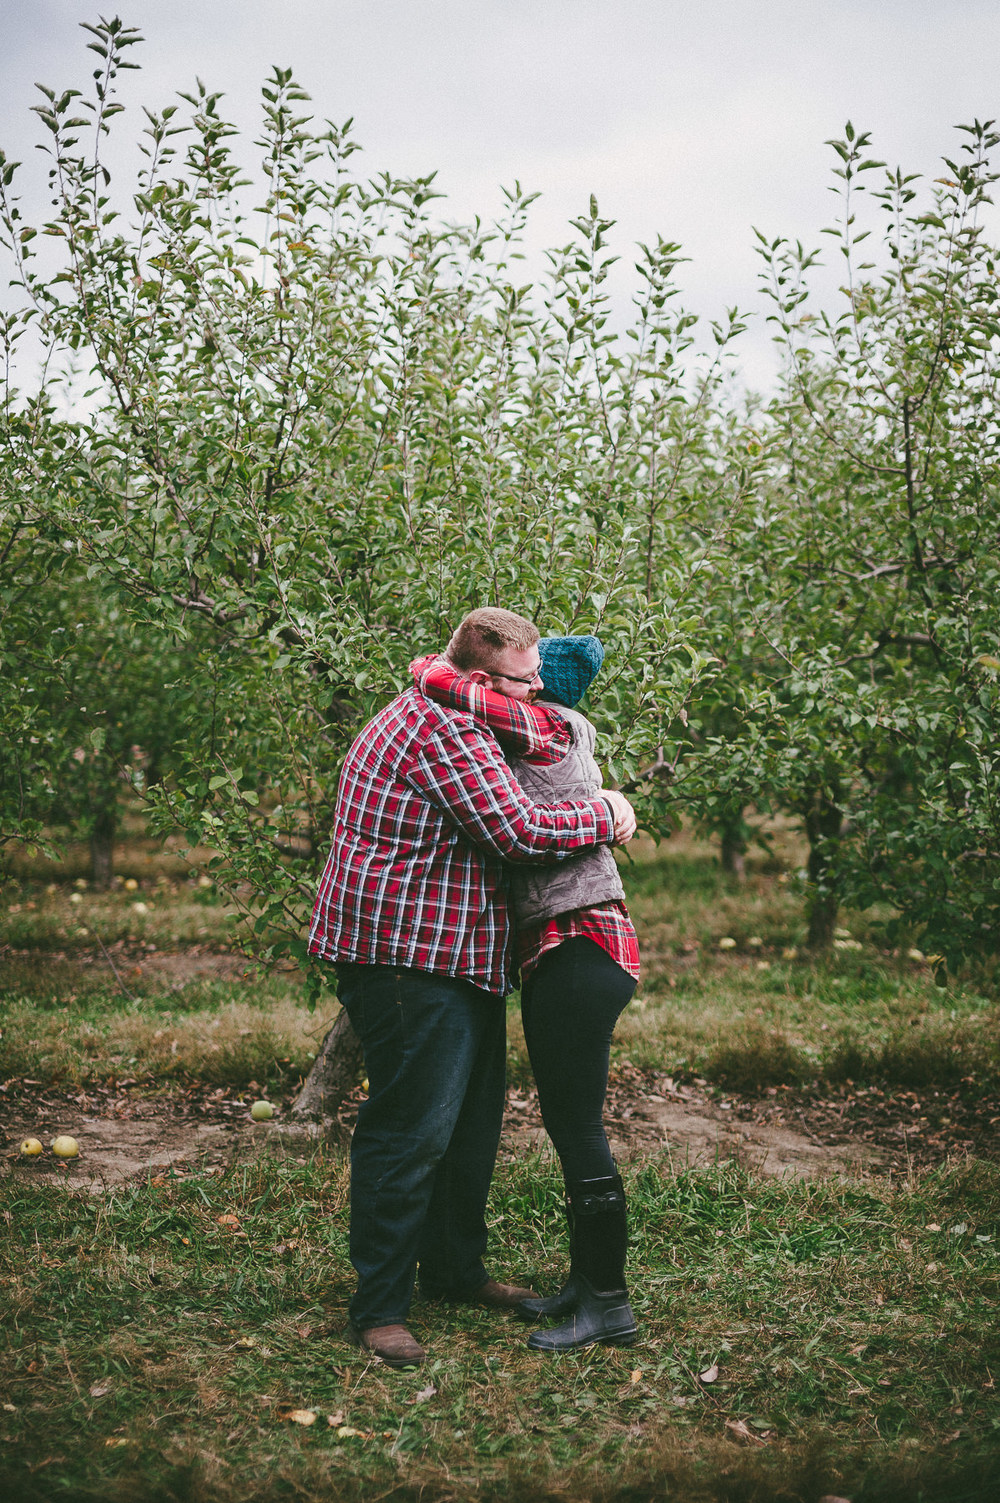 breighton-and-basette-photography-copyrighted-image-blog-amanda-and-eric-proposal-039.jpg